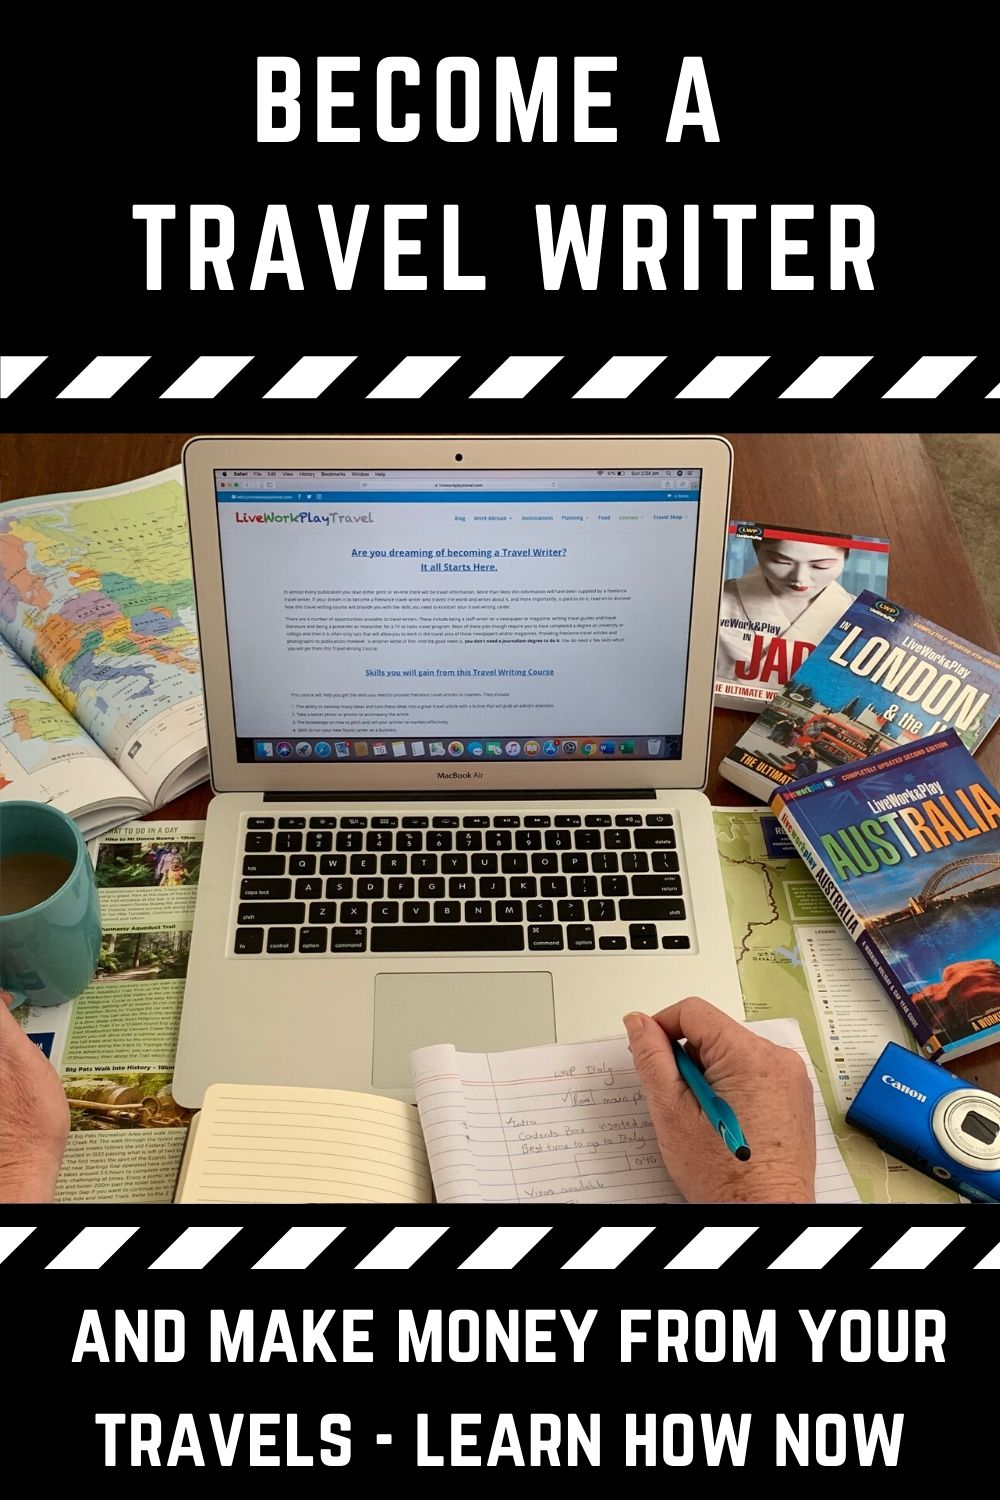 #TravelWritingCourse #BecomeATravelWriter